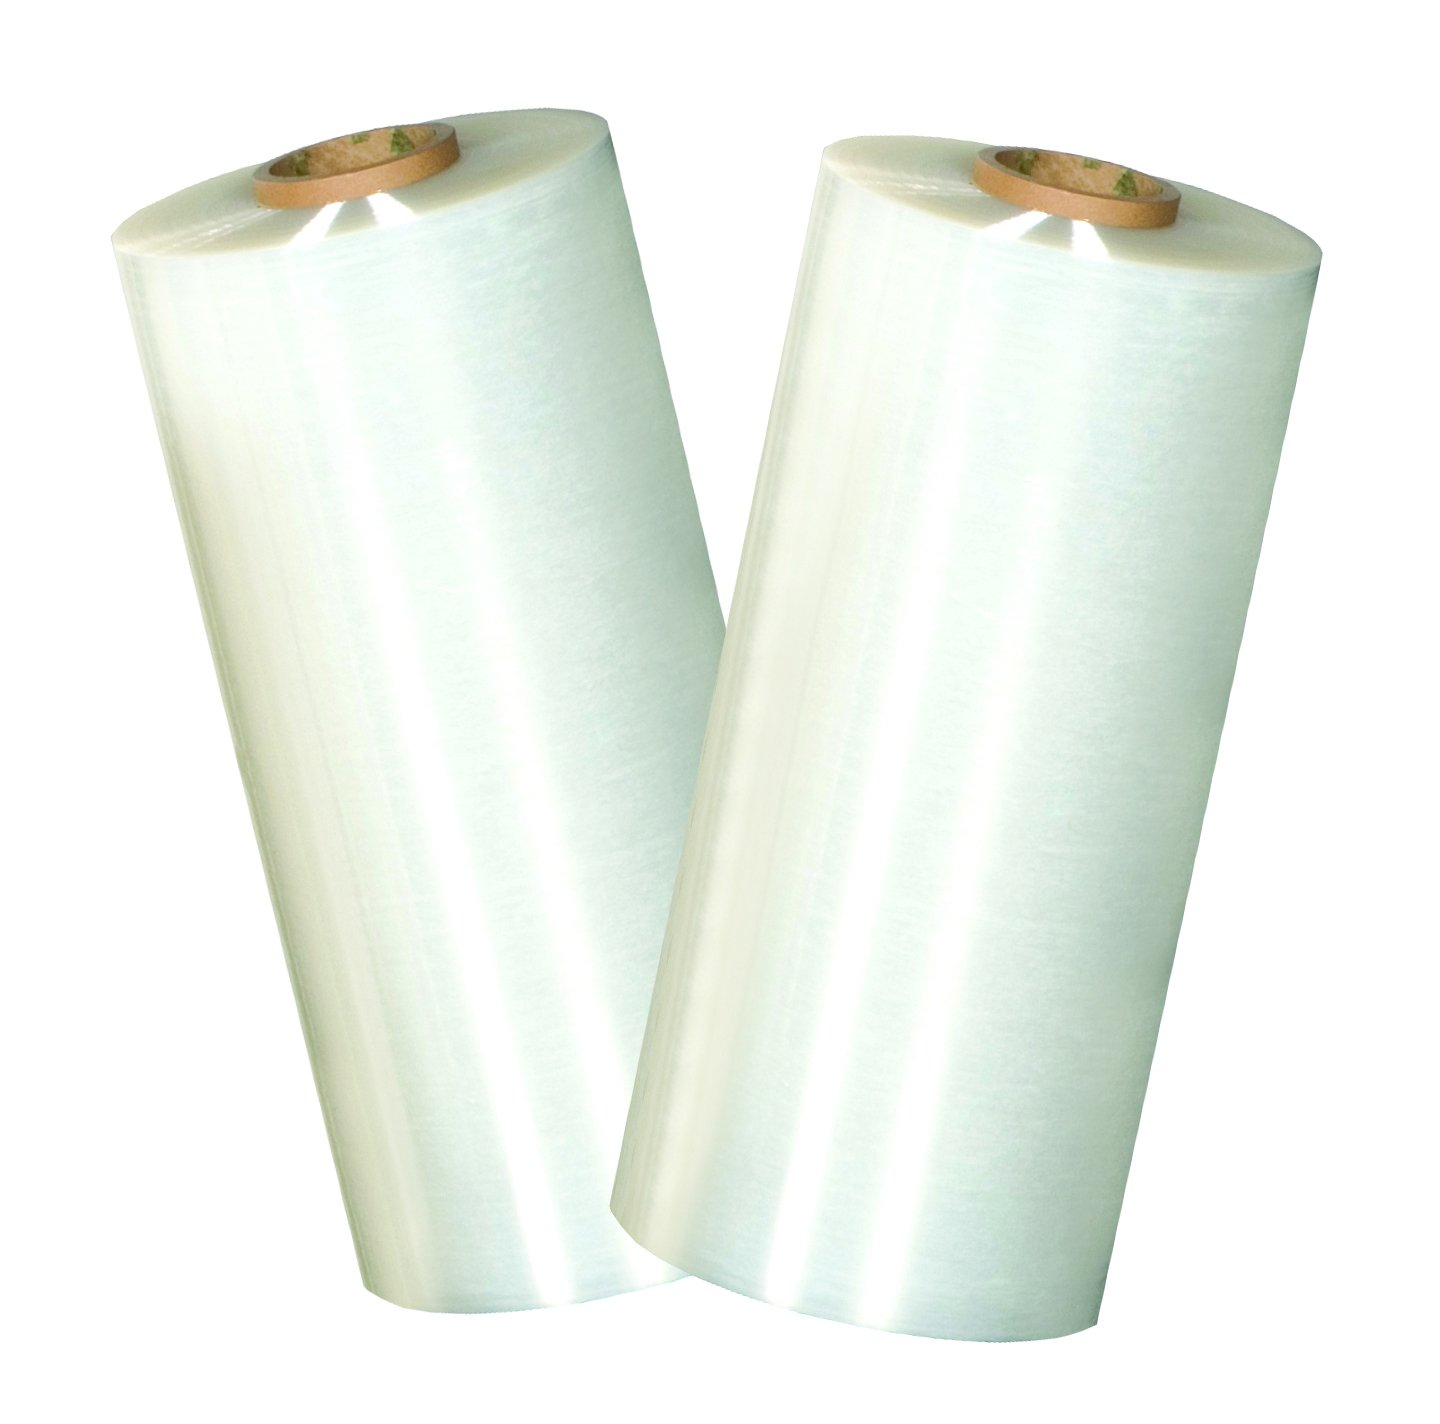 TRM 44018-80-GAUGE Stretch Film, Hand Wrap, 18'' Wide, 1500' Long, 80 Gauge (Pack of 4) by TRM Manufacturing